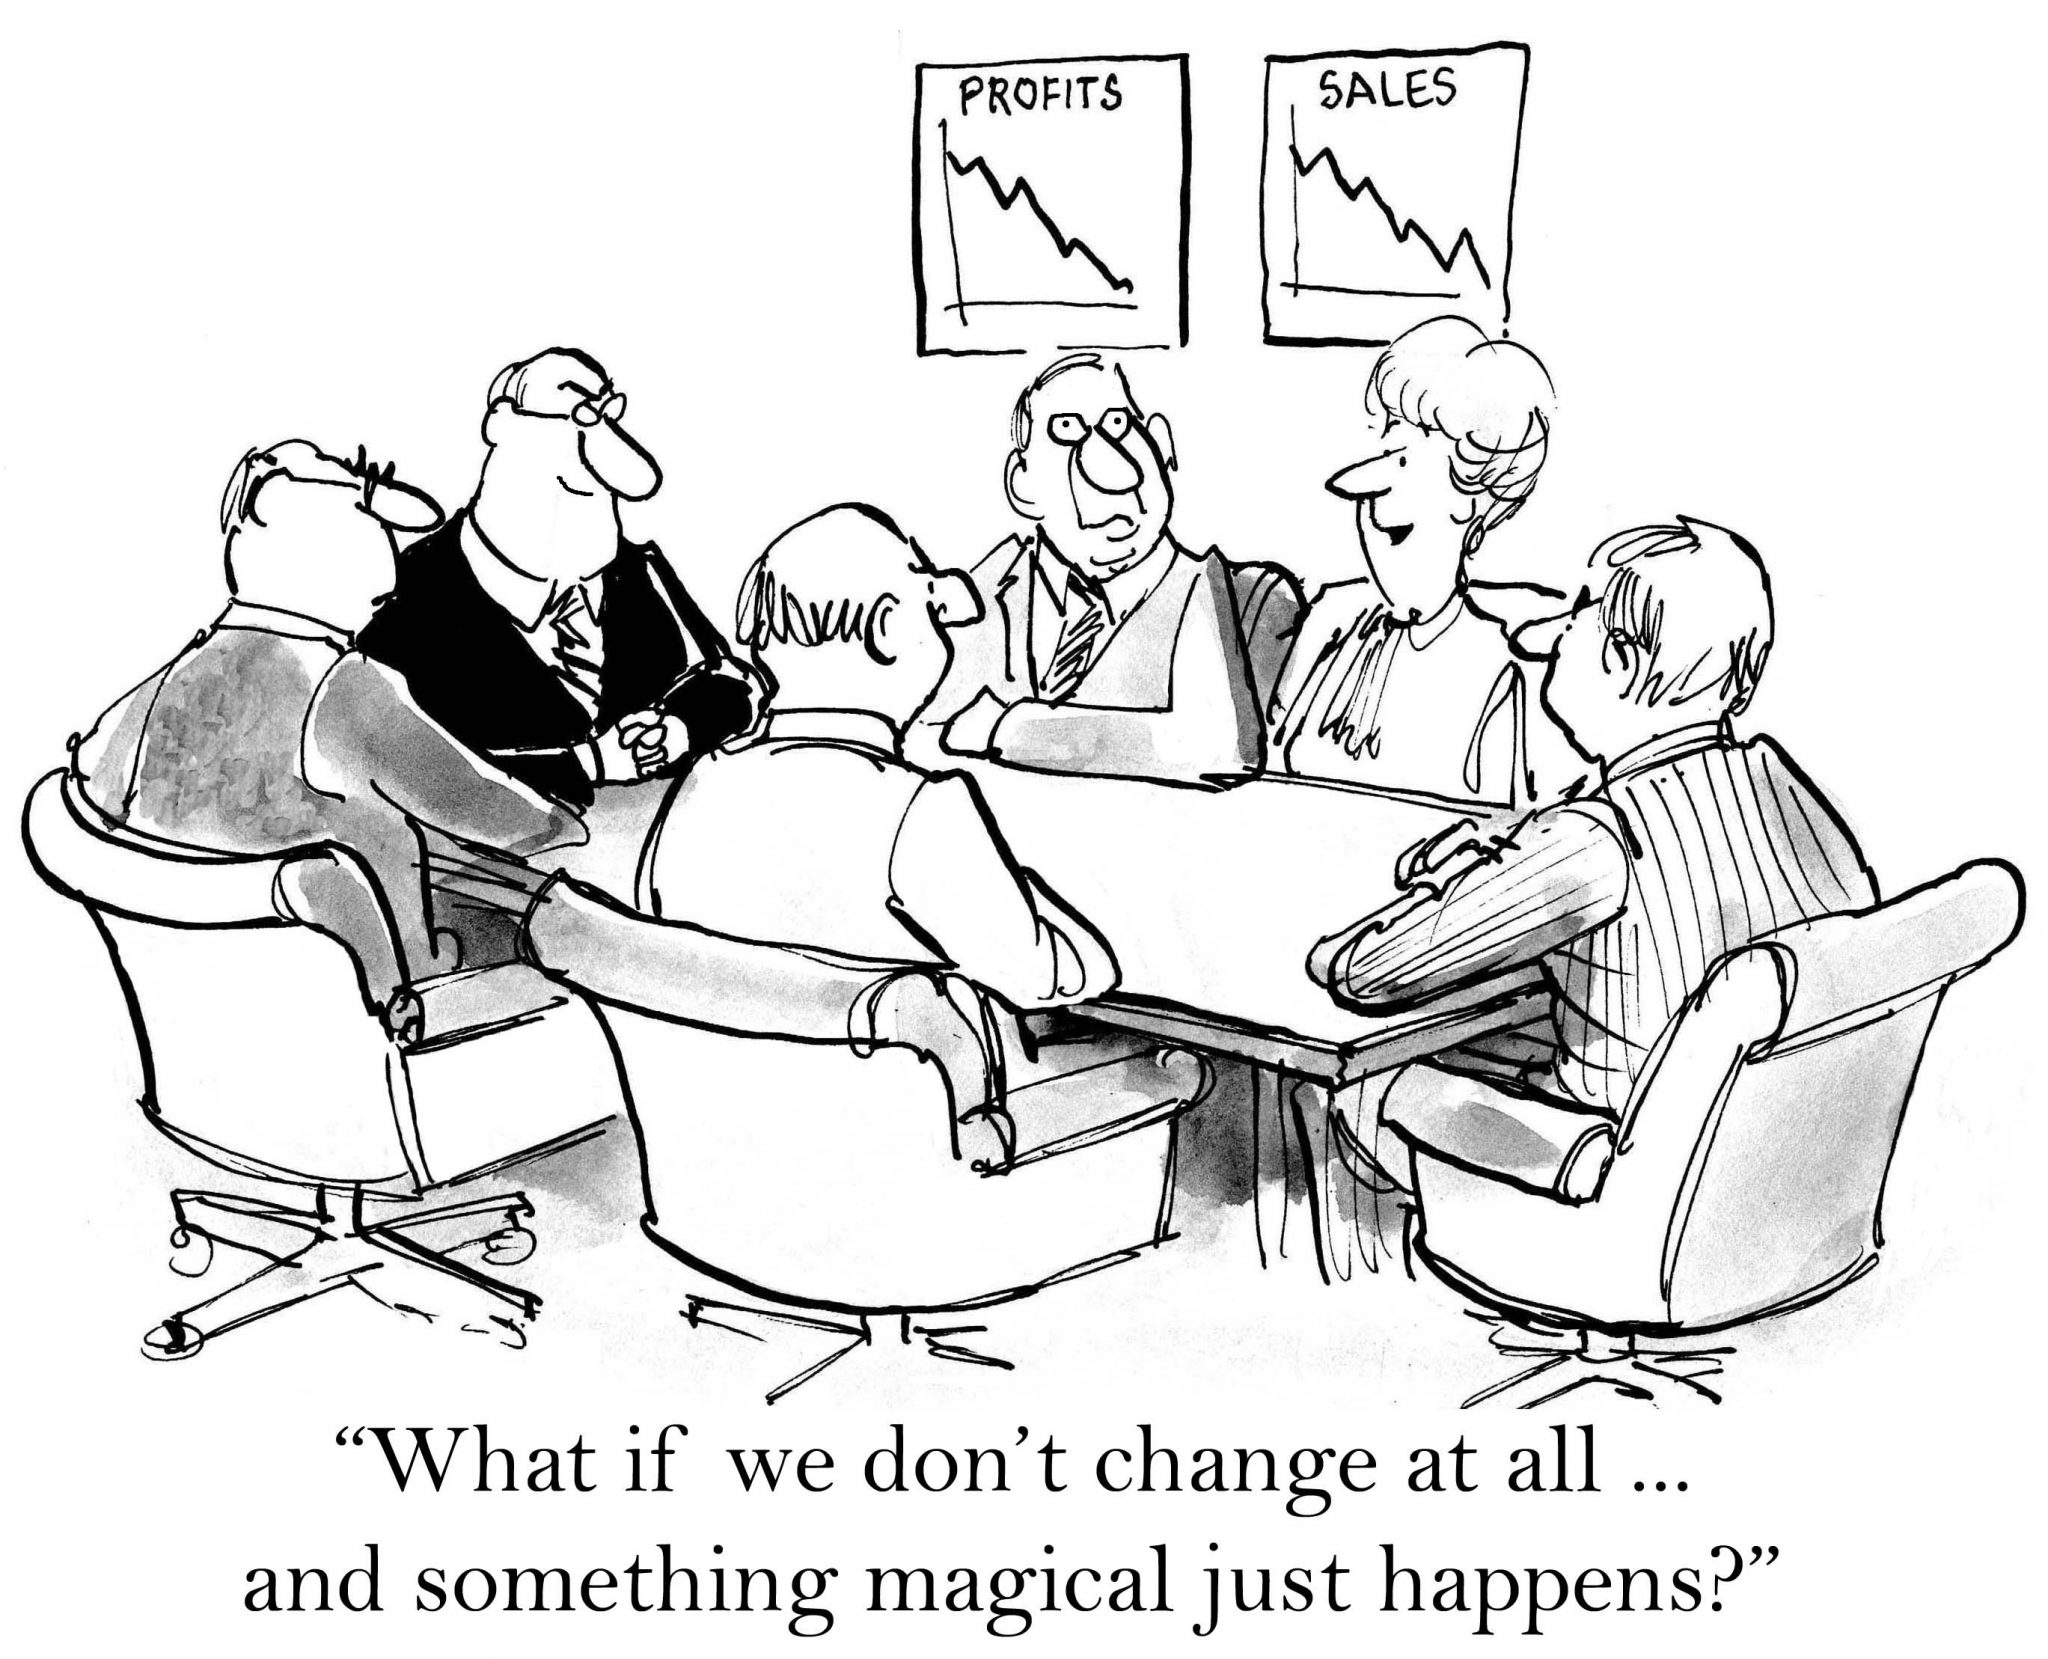 5 Ways to Better Lead Organizational Change